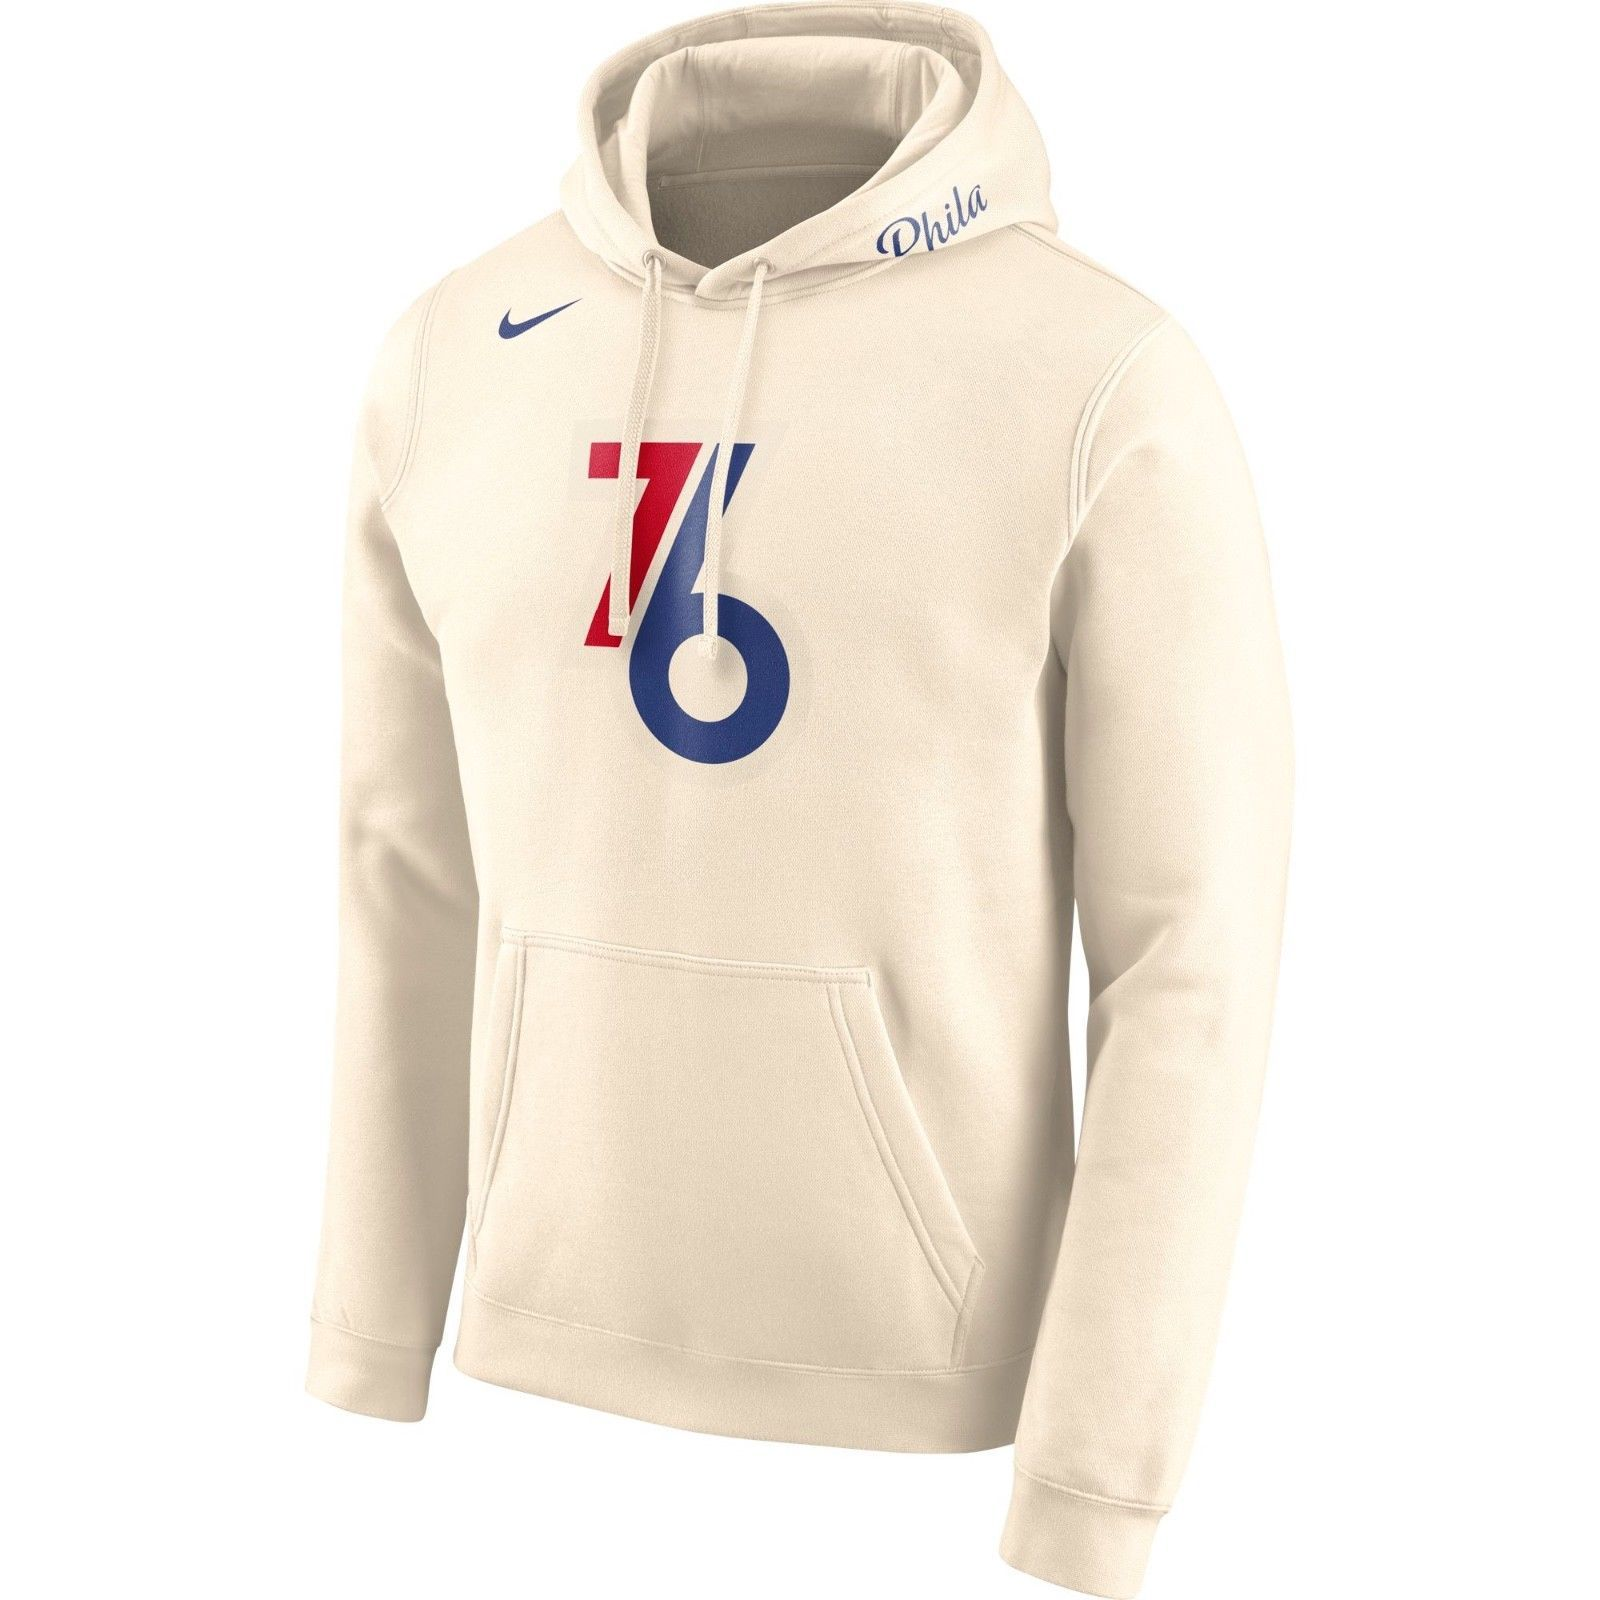 6cd9c3b15 Nike Philadelphia 76ers City Edition Hoodie Sweatshirt VERY RARE Sz M  920747-120 please retweet